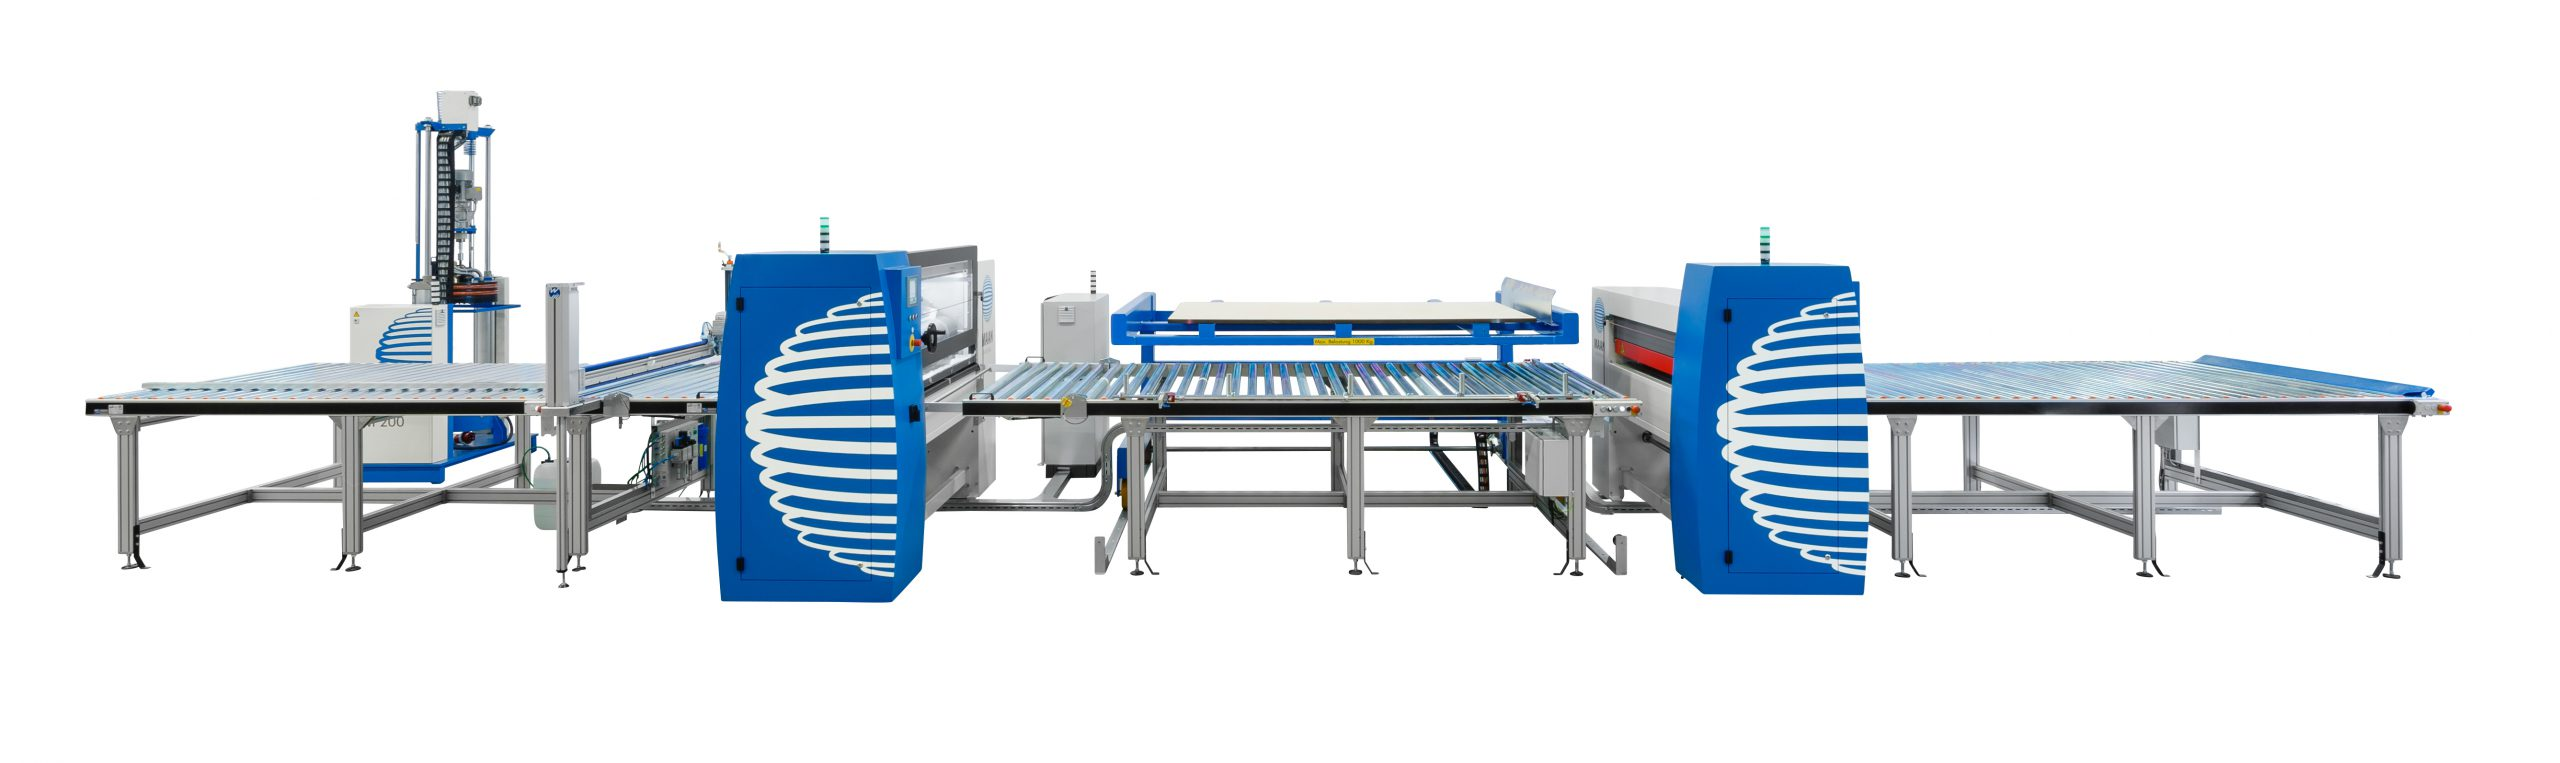 Sheet-2-Sheet_Production Line